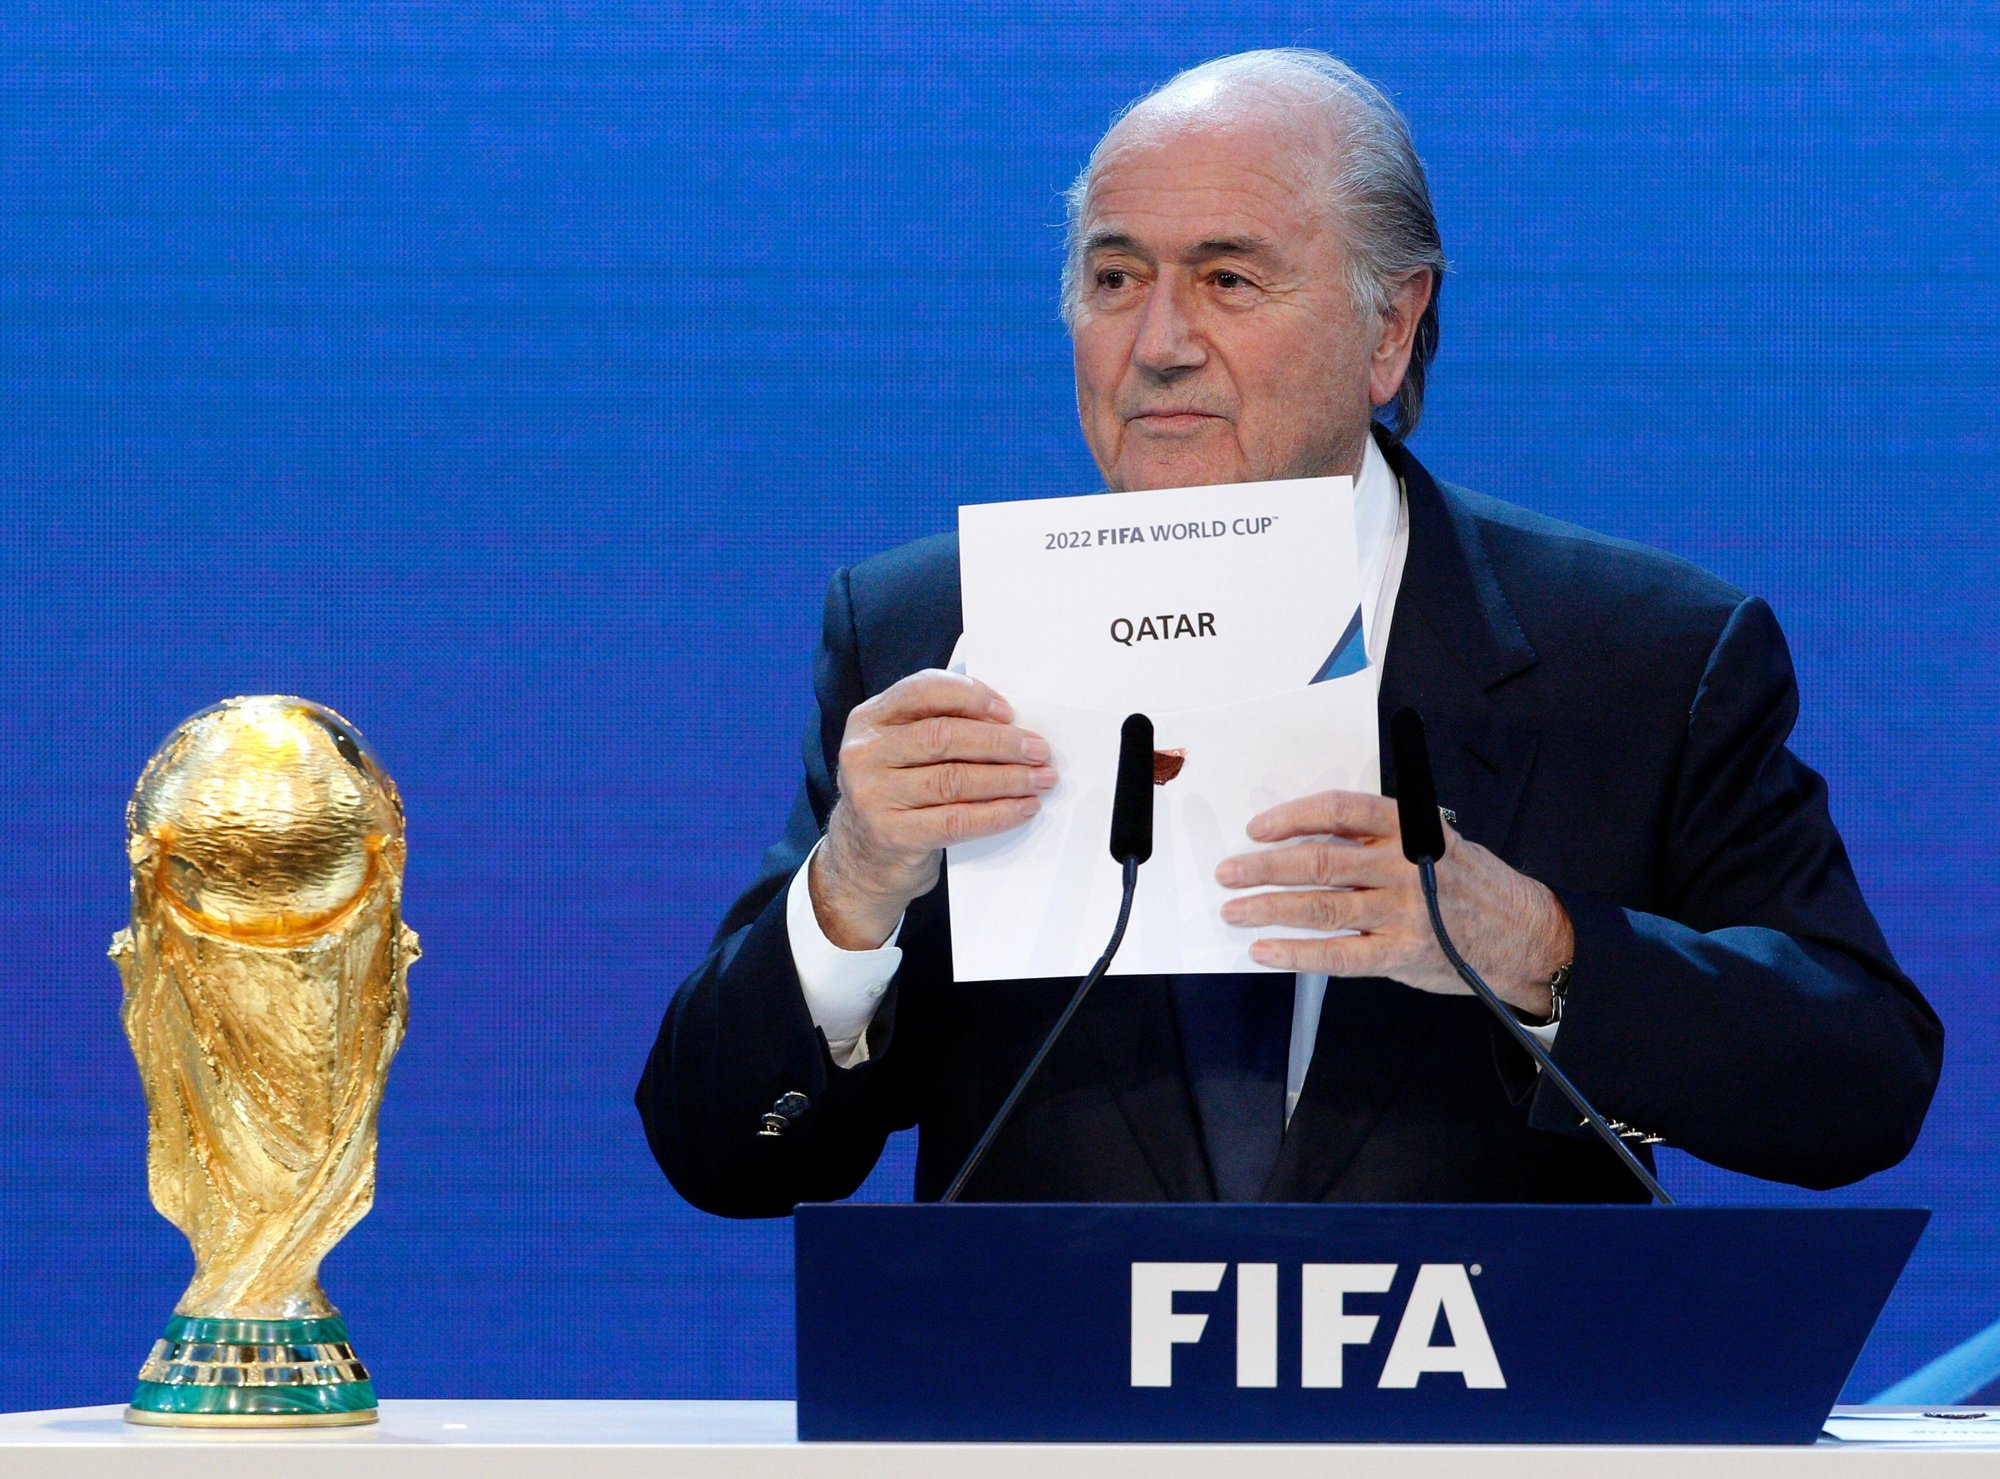 Qatar World Cup 2022: The Sickening ''Blatant Mistake'' That Is Still Going Ahead - The Sportsman